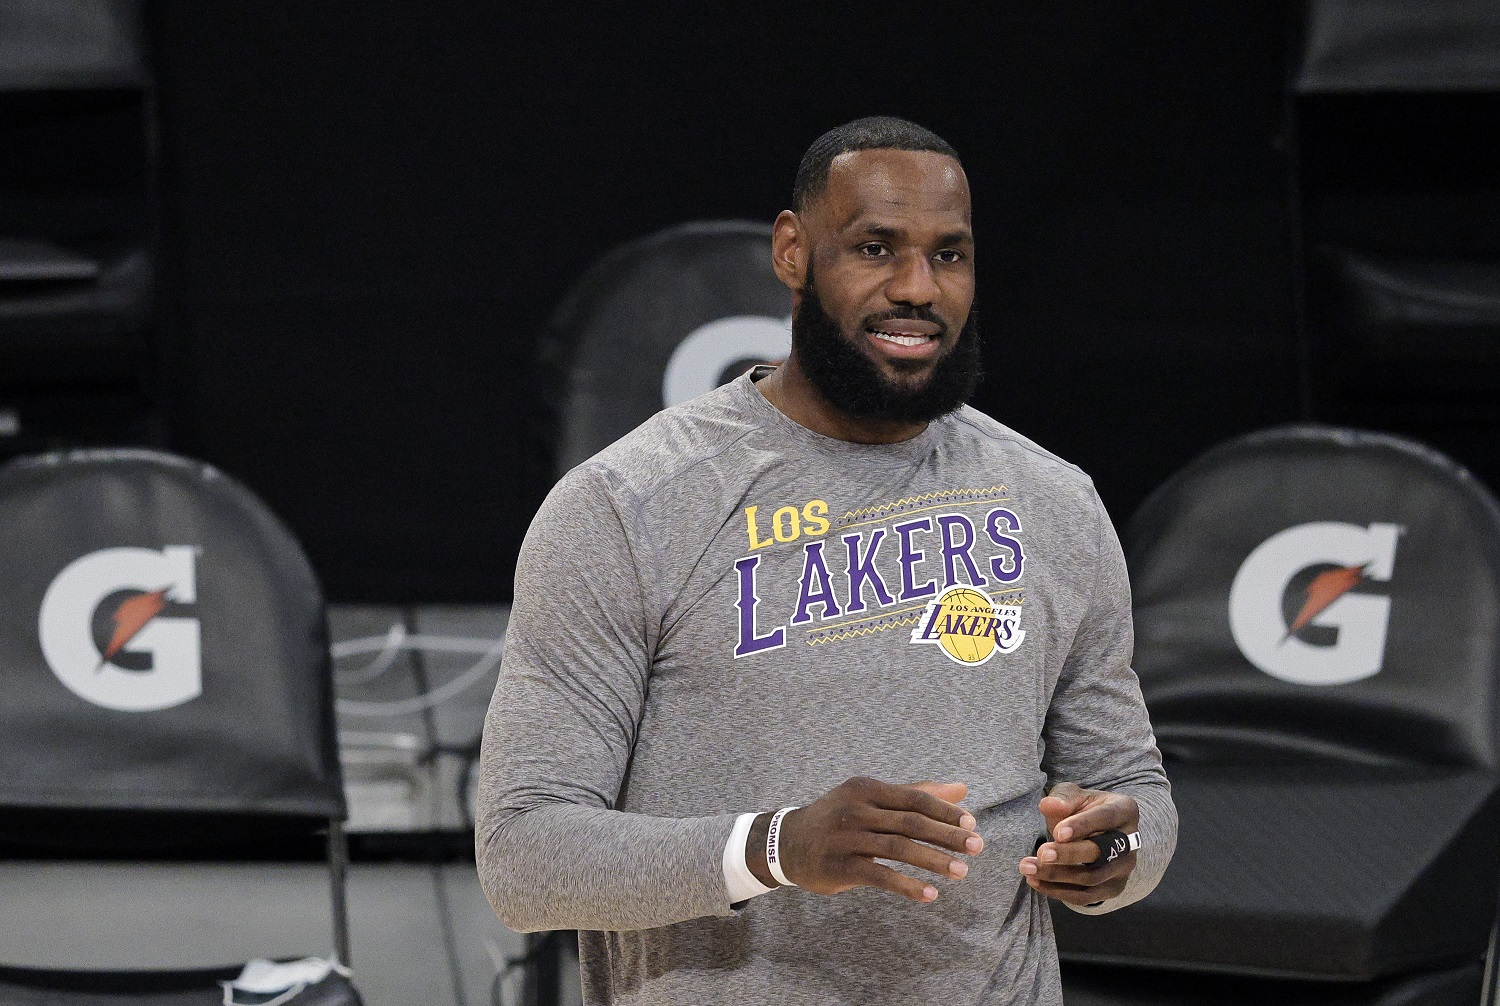 Los ANgles Lakers star LeBron James makes easy money as an endorser on Instagram.